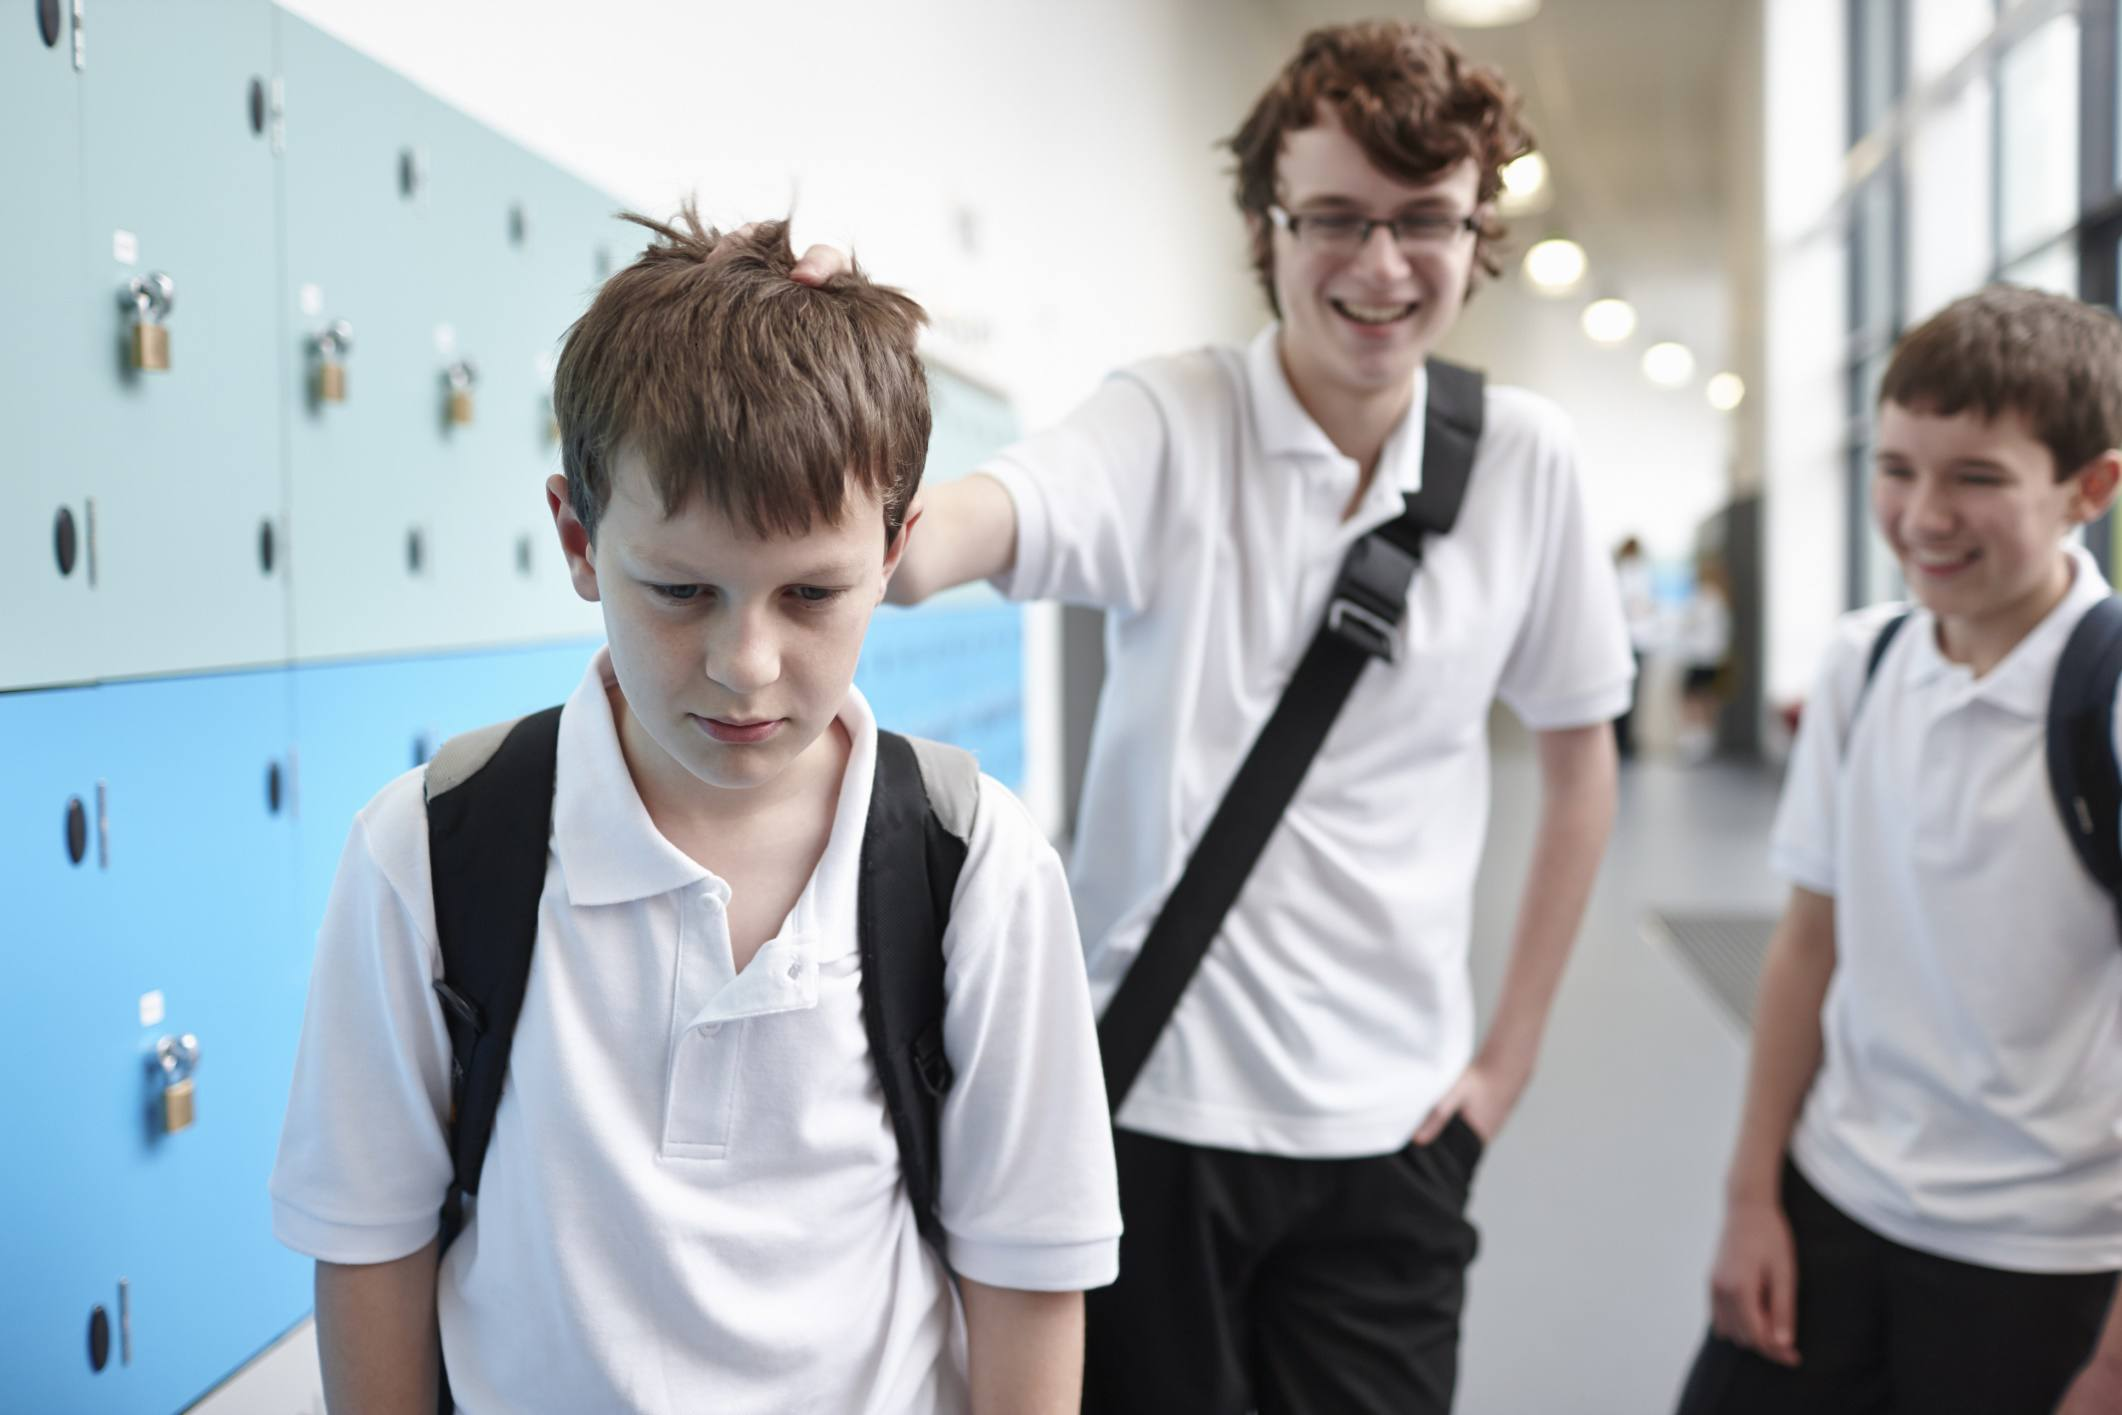 Top 10 Ways to Prevent Bullying at School